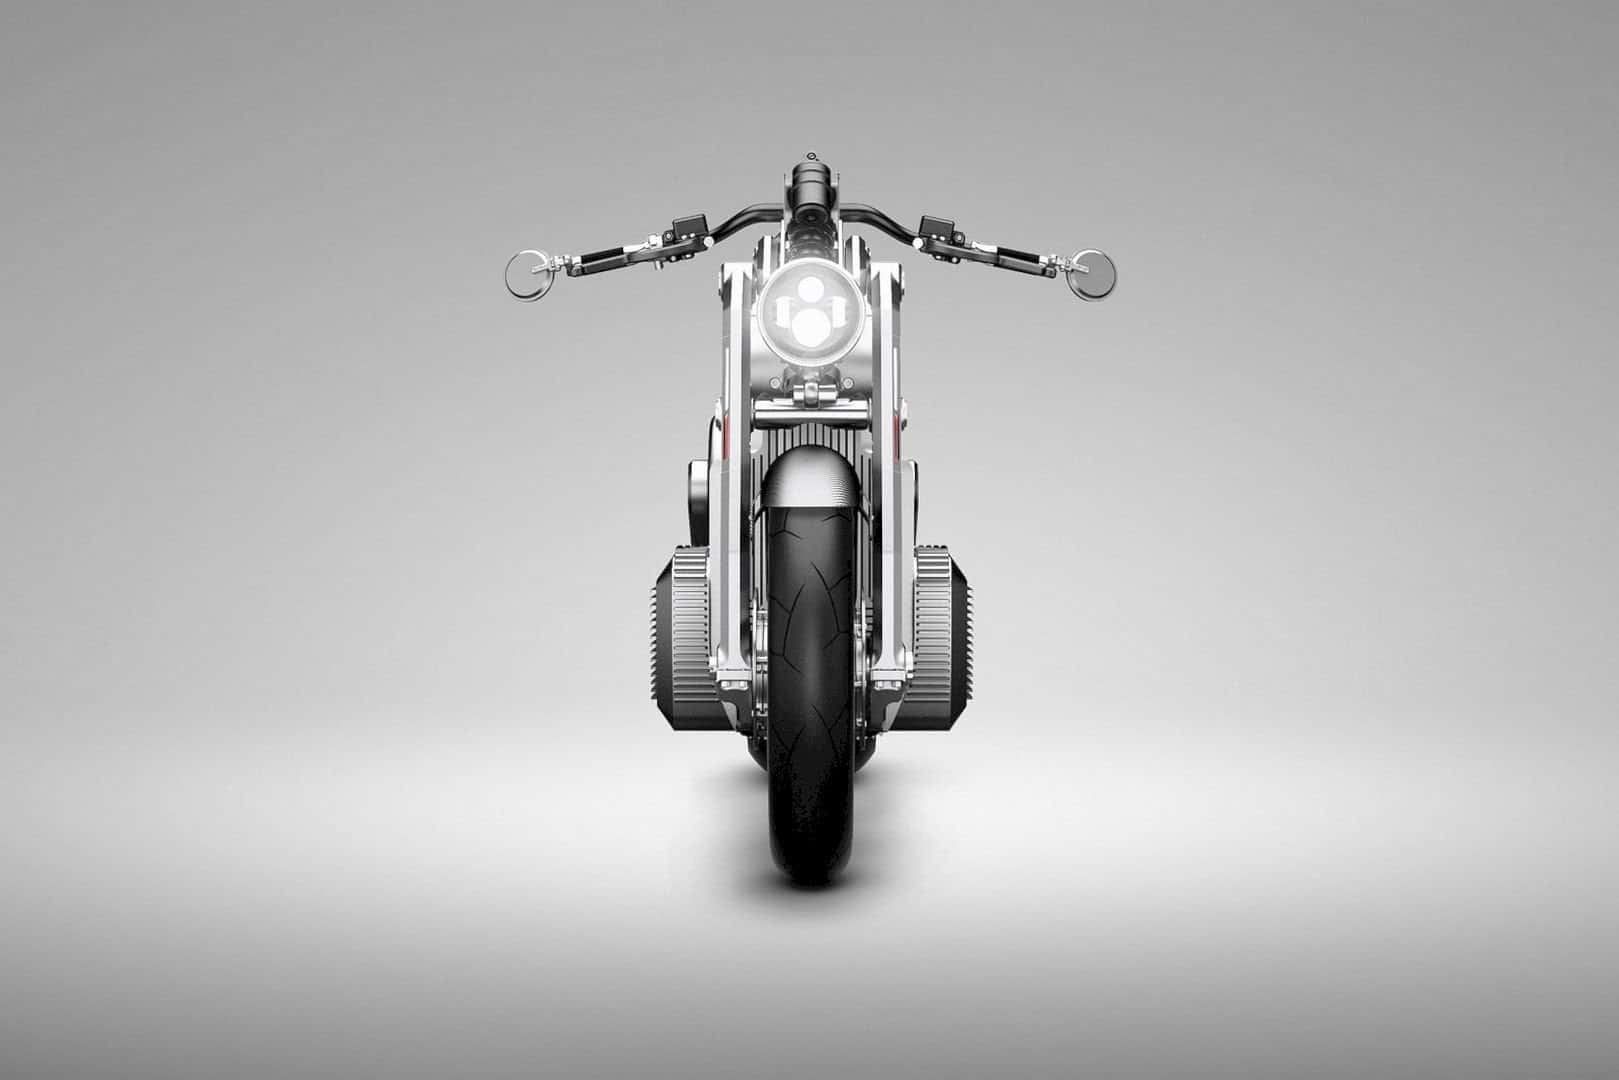 Zeus By Curtiss Motorcycle 1